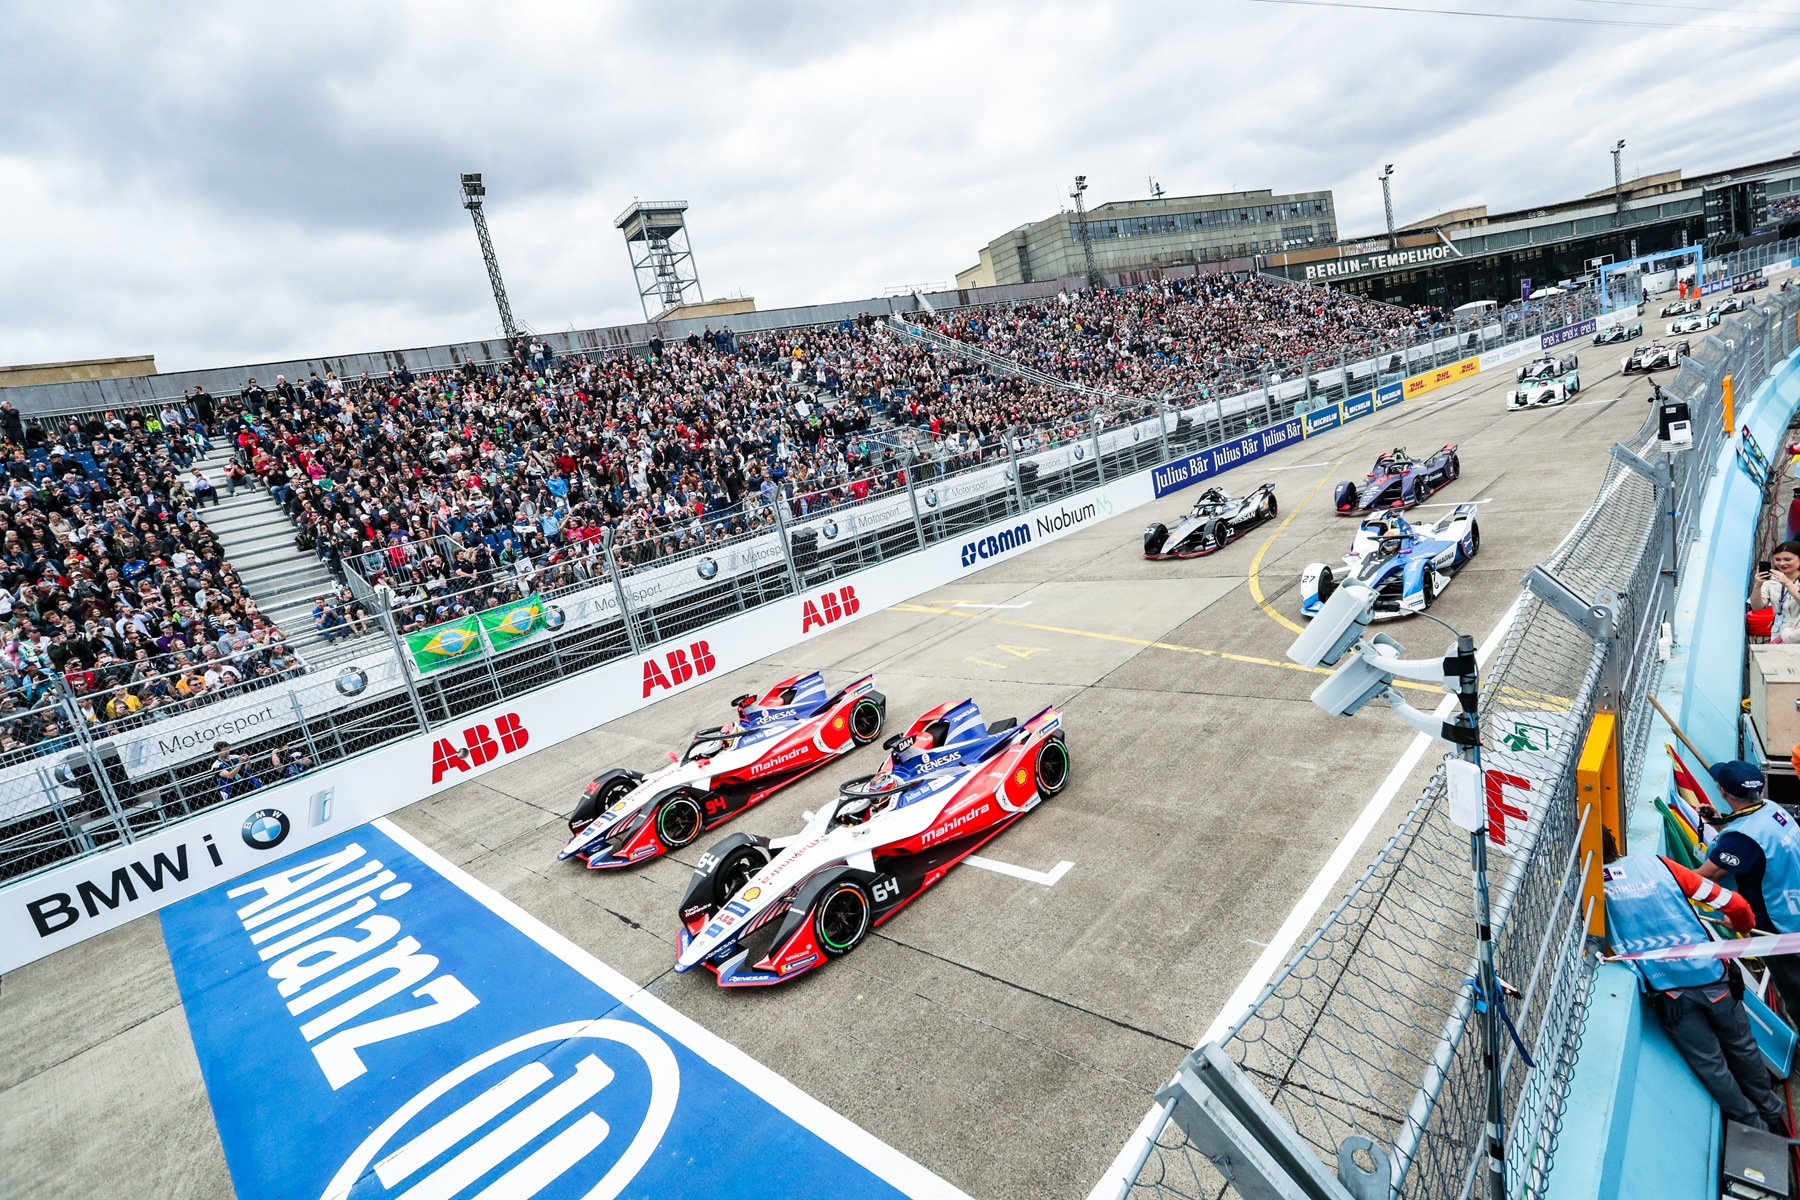 Mahindra-Racing-Race-Start-Allianz-Berlin-Tempelhof